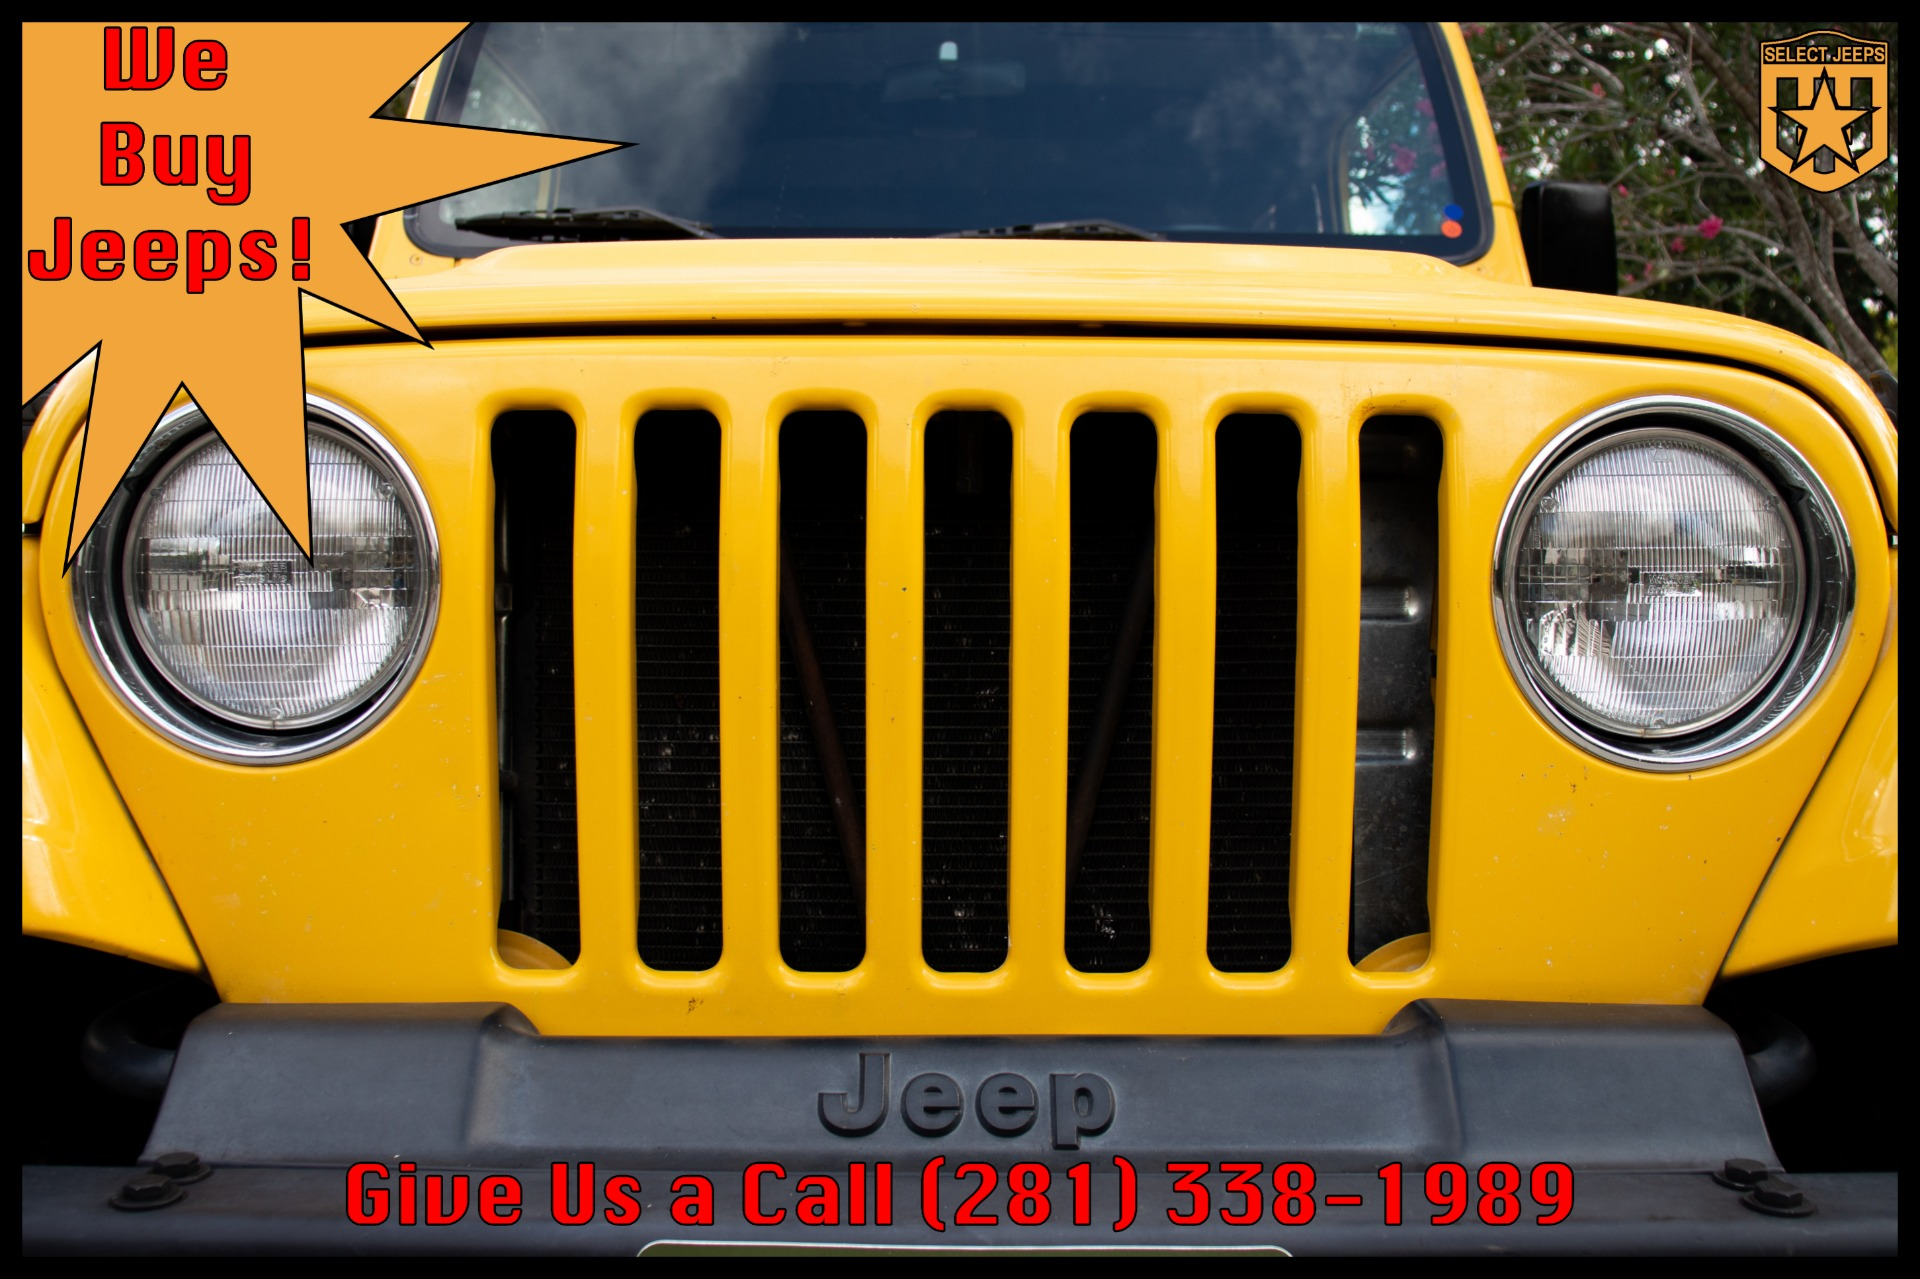 Used-2009-Jeep-Wrangler-X